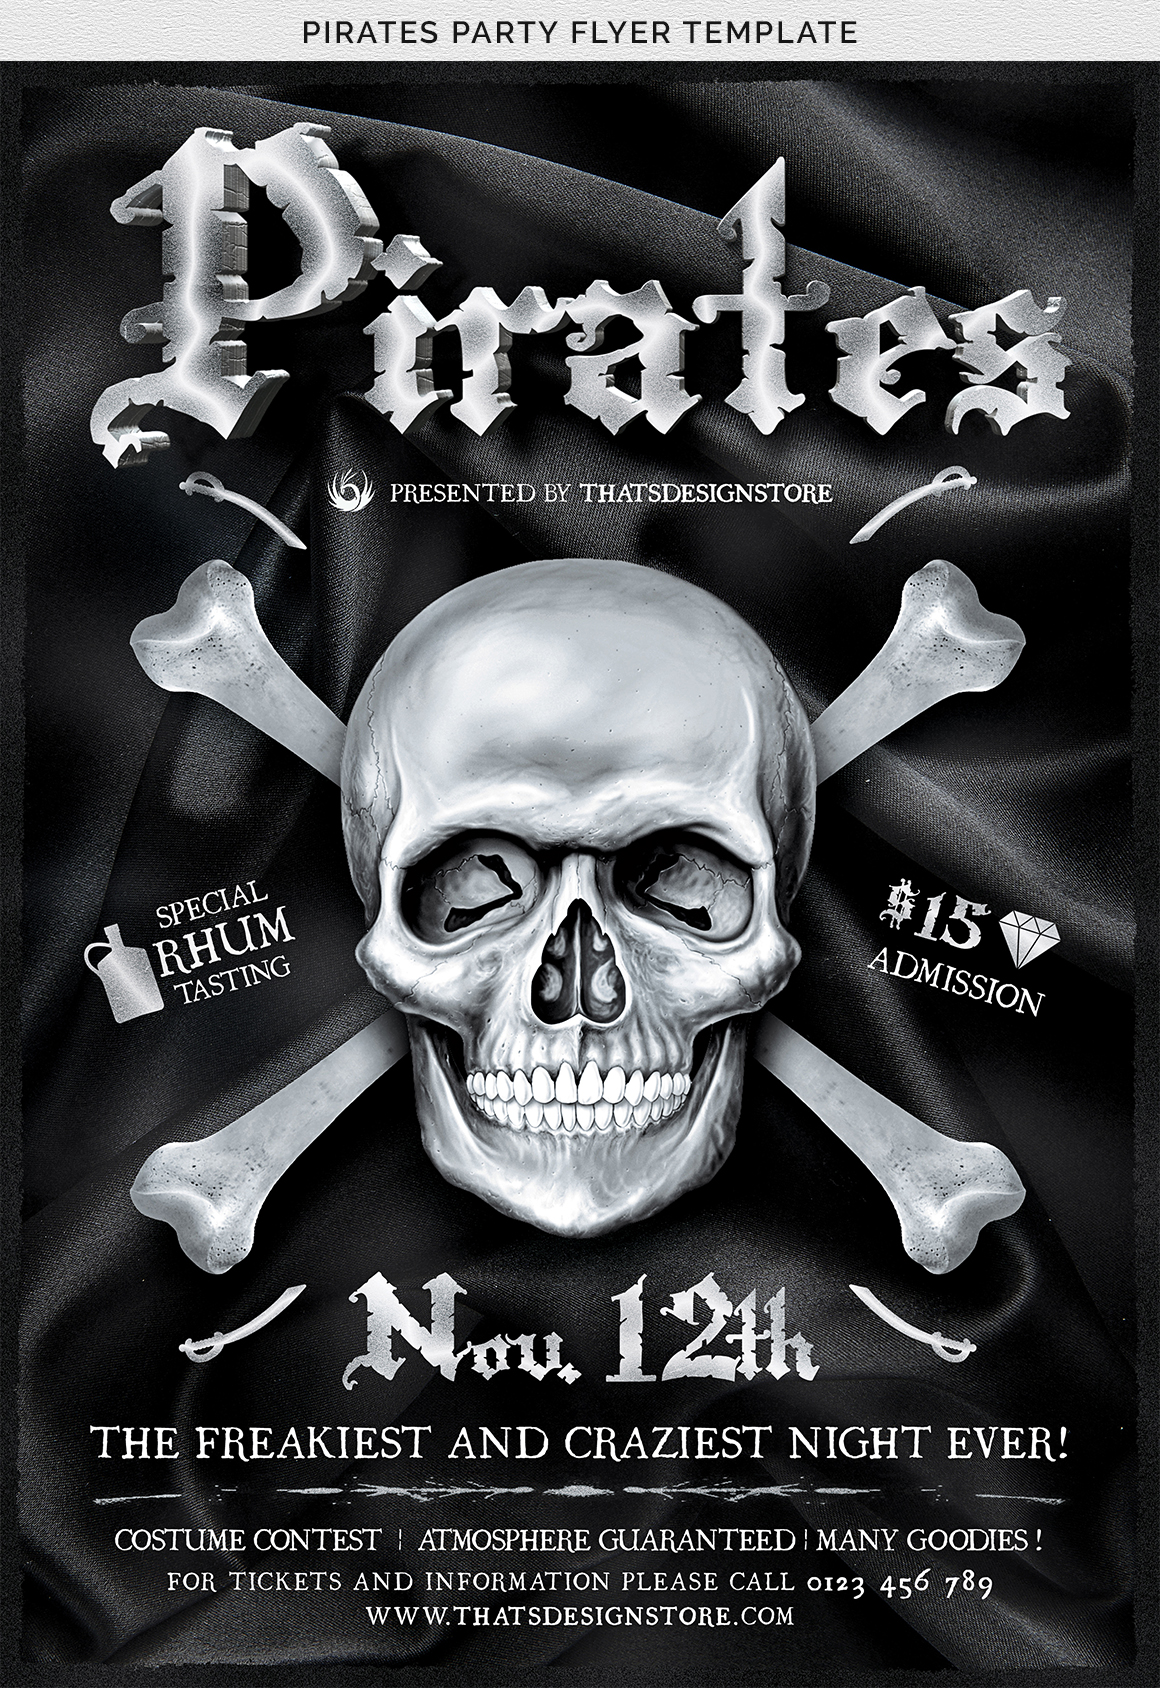 Pirates Party Flyer Template example image 7